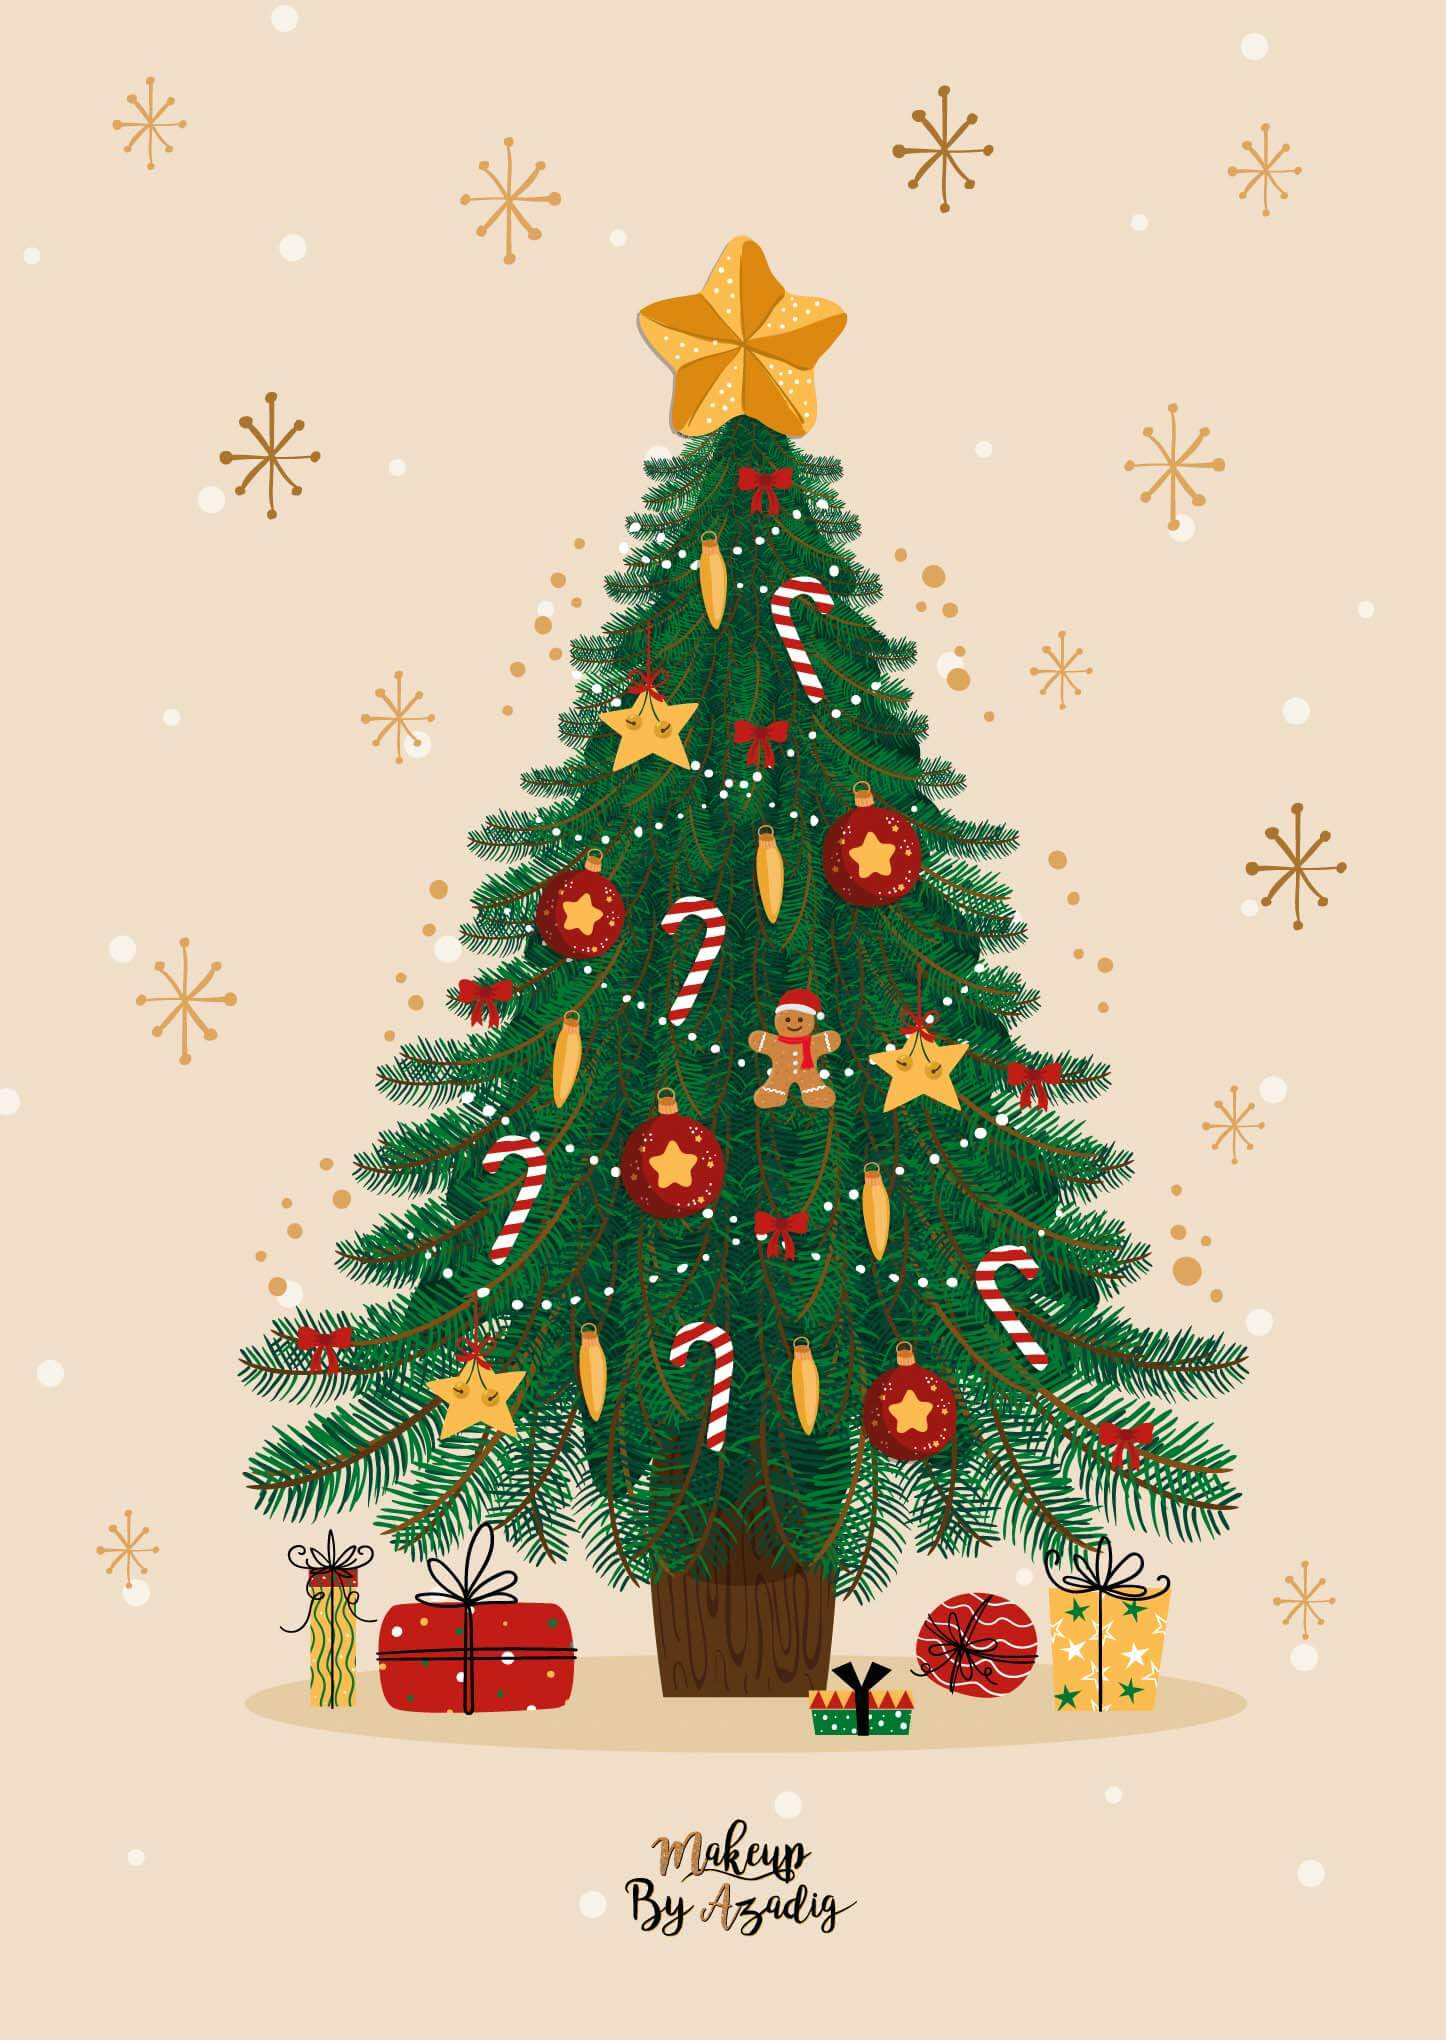 fond-decran-wallpaper-christmas-noel-tree-christmastree-ipad-tablette-apple-makeupbyazadig-tendance